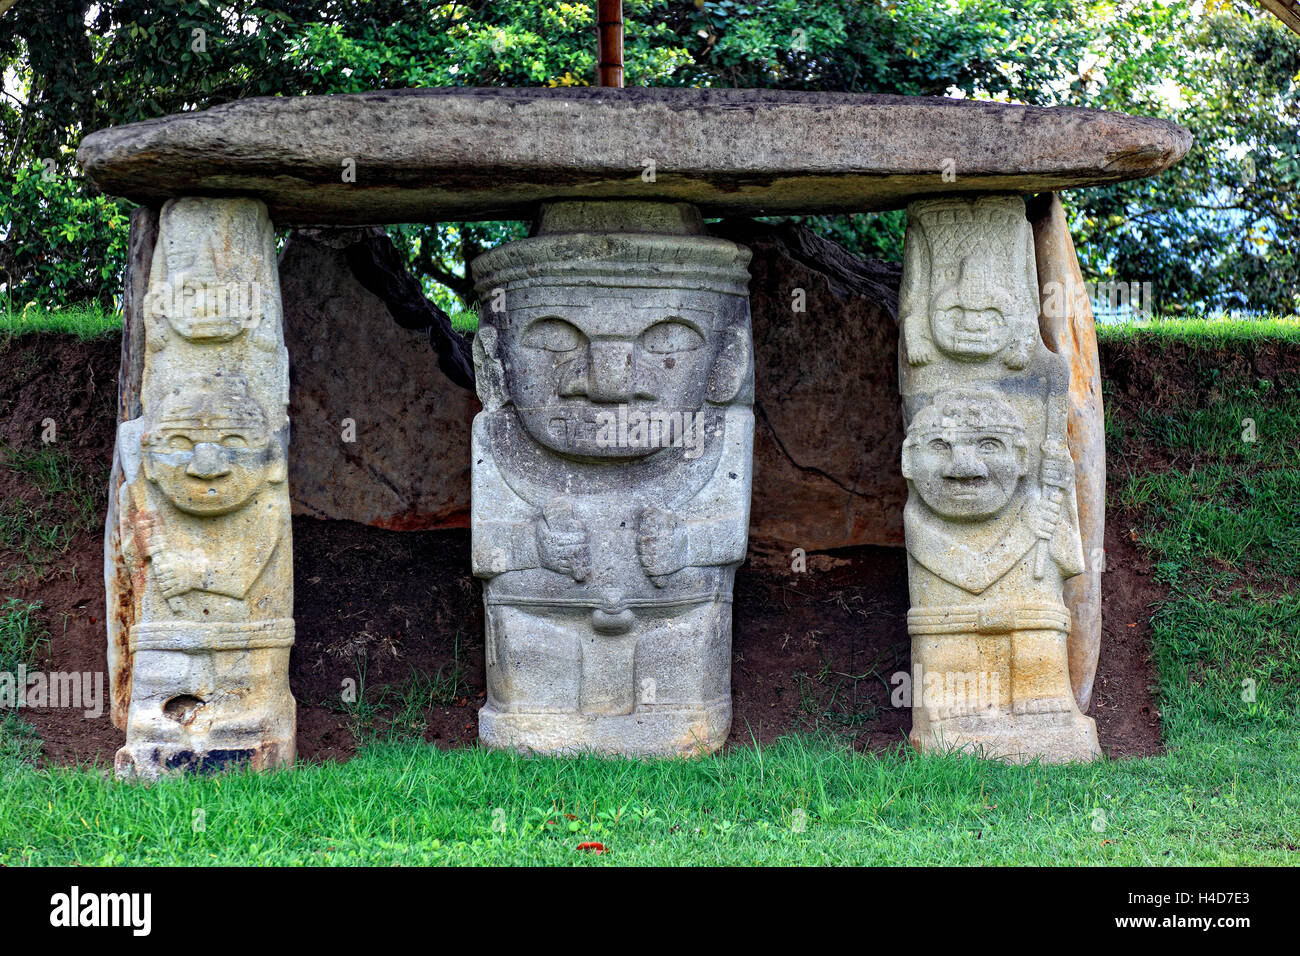 Republic Colombia, San Agustin, Departamento Huila, archaeological excavation site, statues, prehistorically, lava, - Stock Image